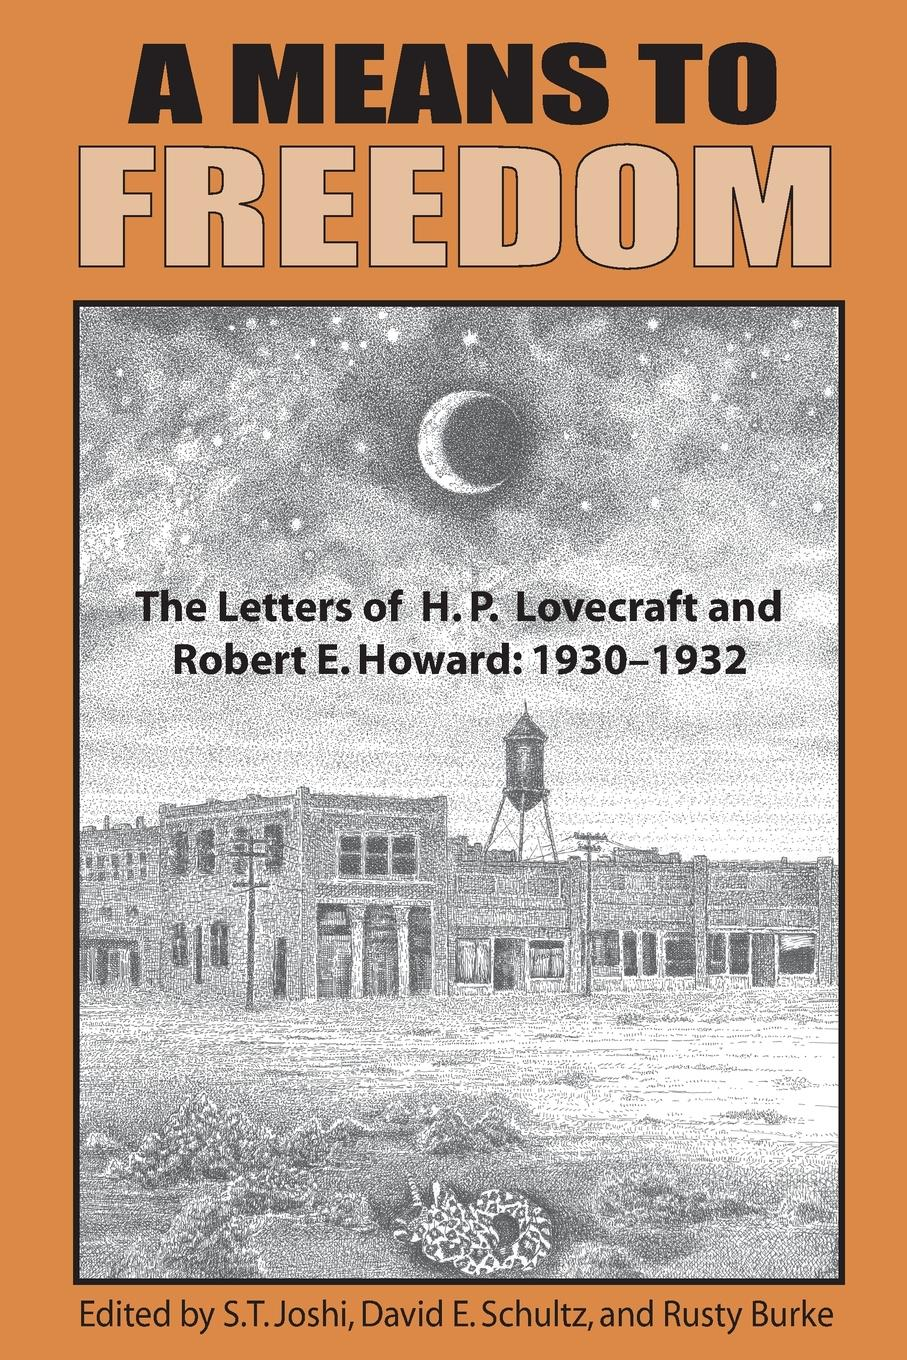 лучшая цена H. P. Lovecraft, Robert E. Howard A Means to Freedom. The Letters of H. P. Lovecraft and Robert E. Howard (Volume 1)